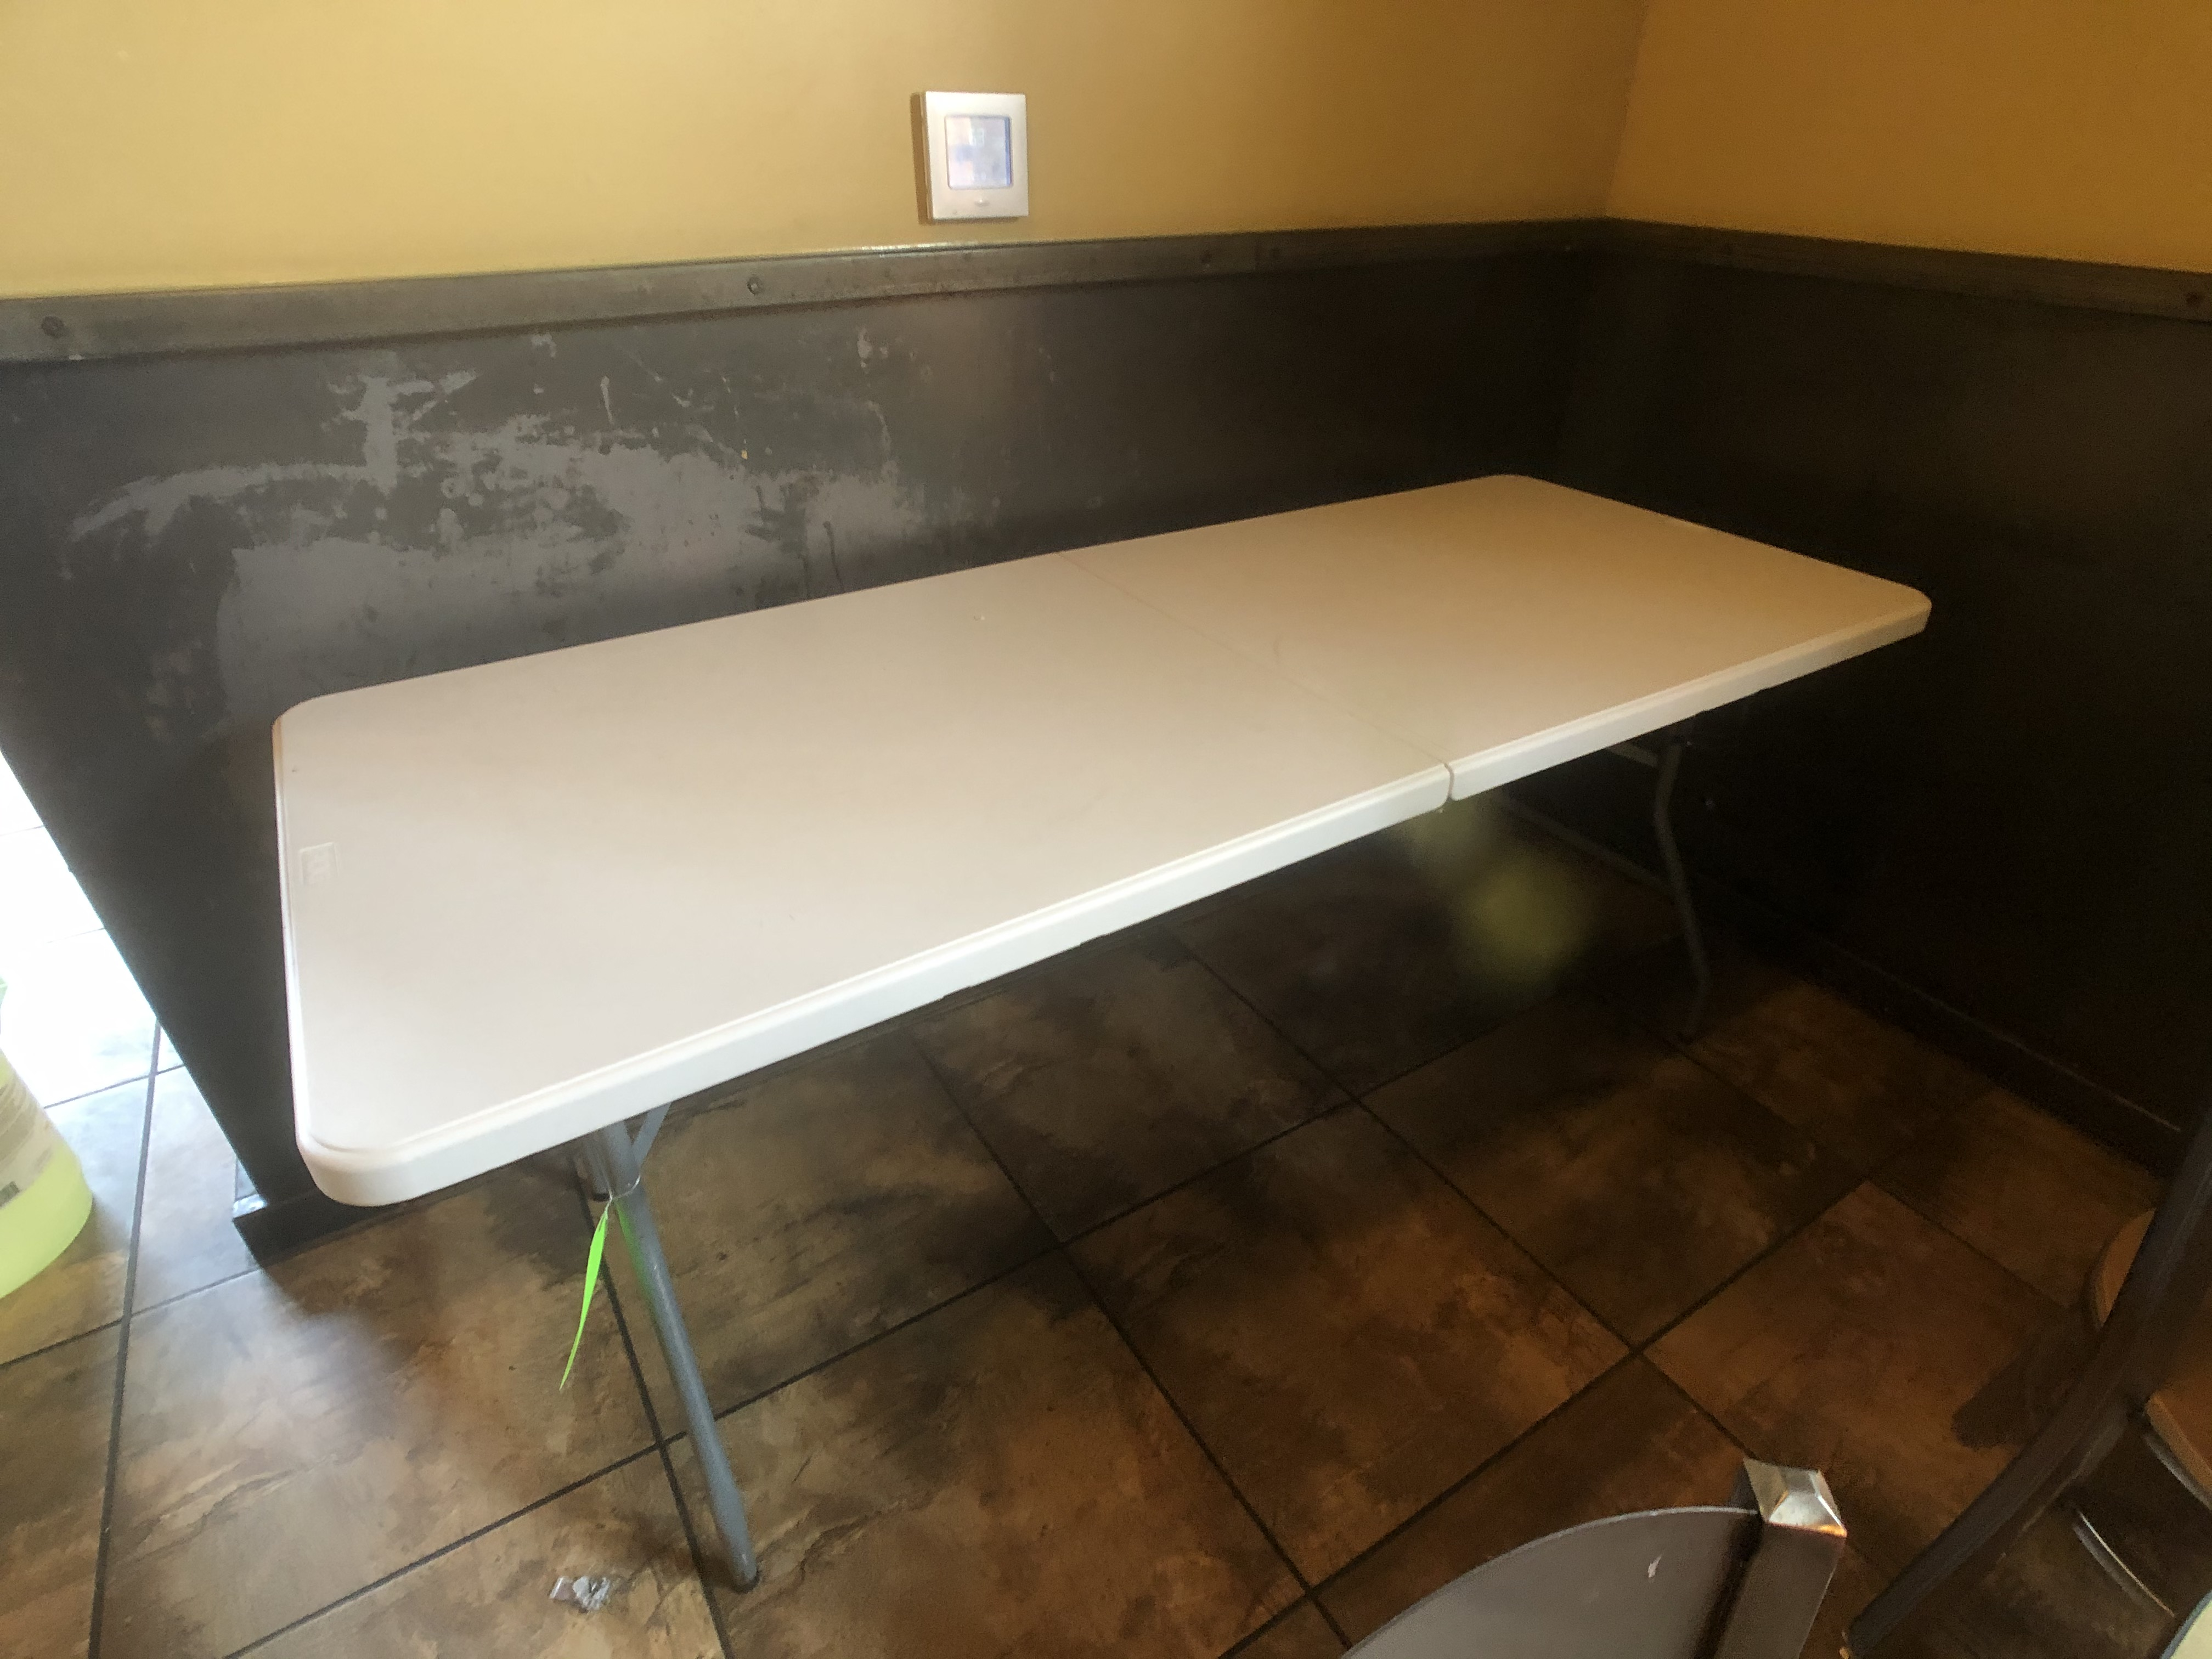 "PDG Foldable Plastic Table, Approx. 70"" L x 29"" W - Image 3 of 3"